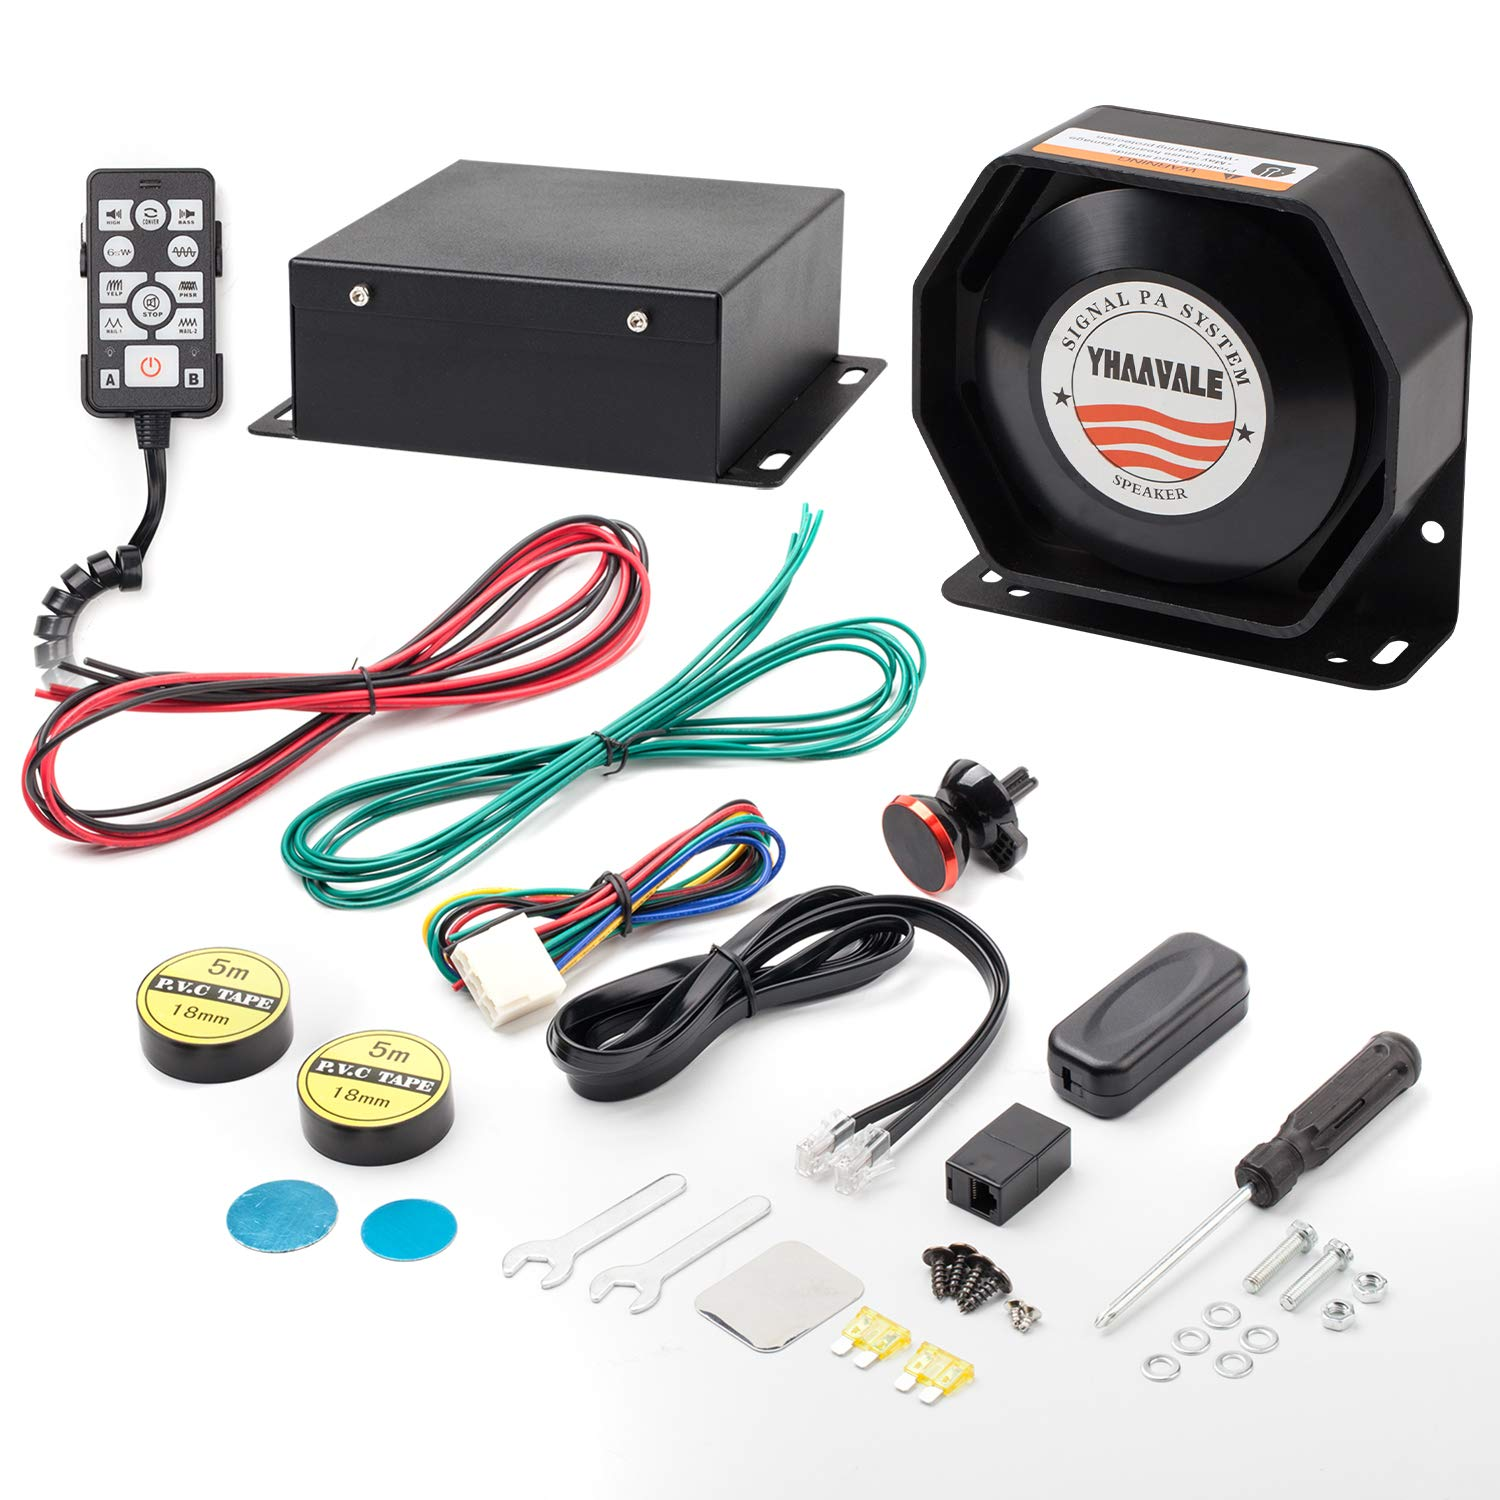 YHAAVALE 9200E Amplifier Police Siren & Metal Ultra Slime Octagon Compact on